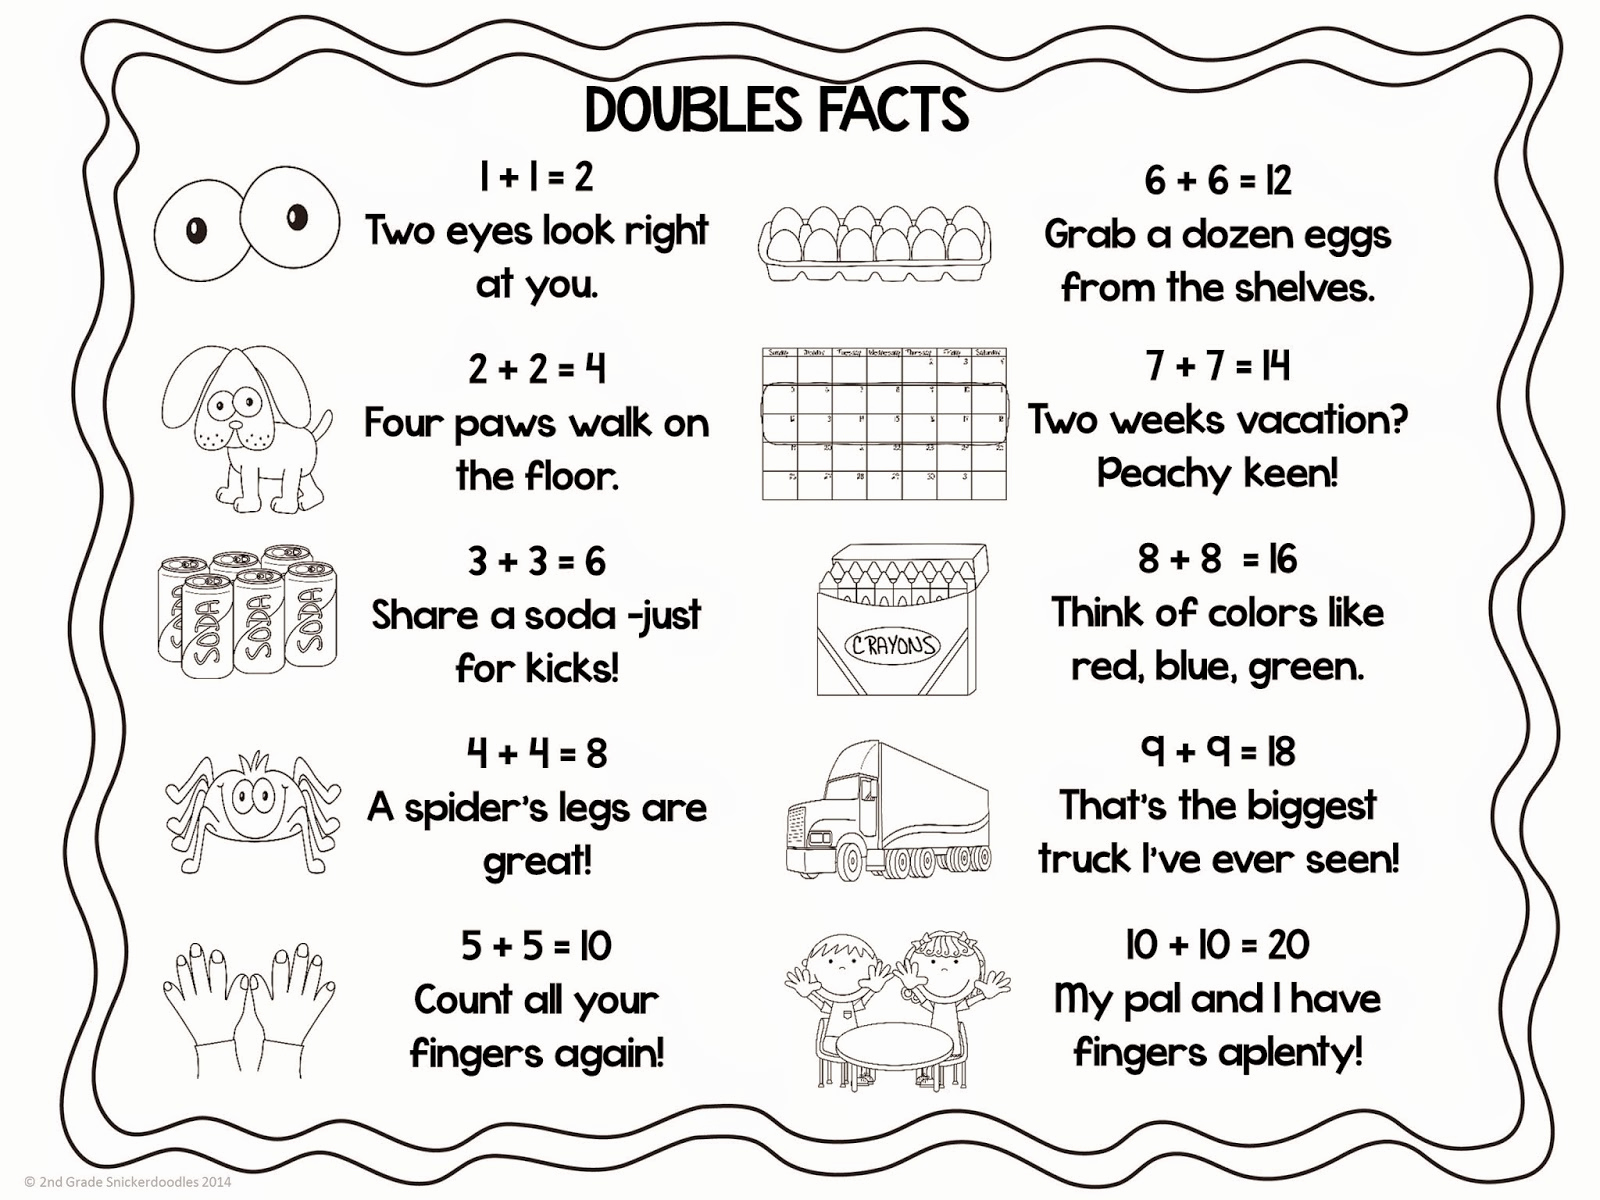 Doubles Math Facts Worksheet Luxury 2nd Grade Snickerdoodles Doubles Facts Freebie